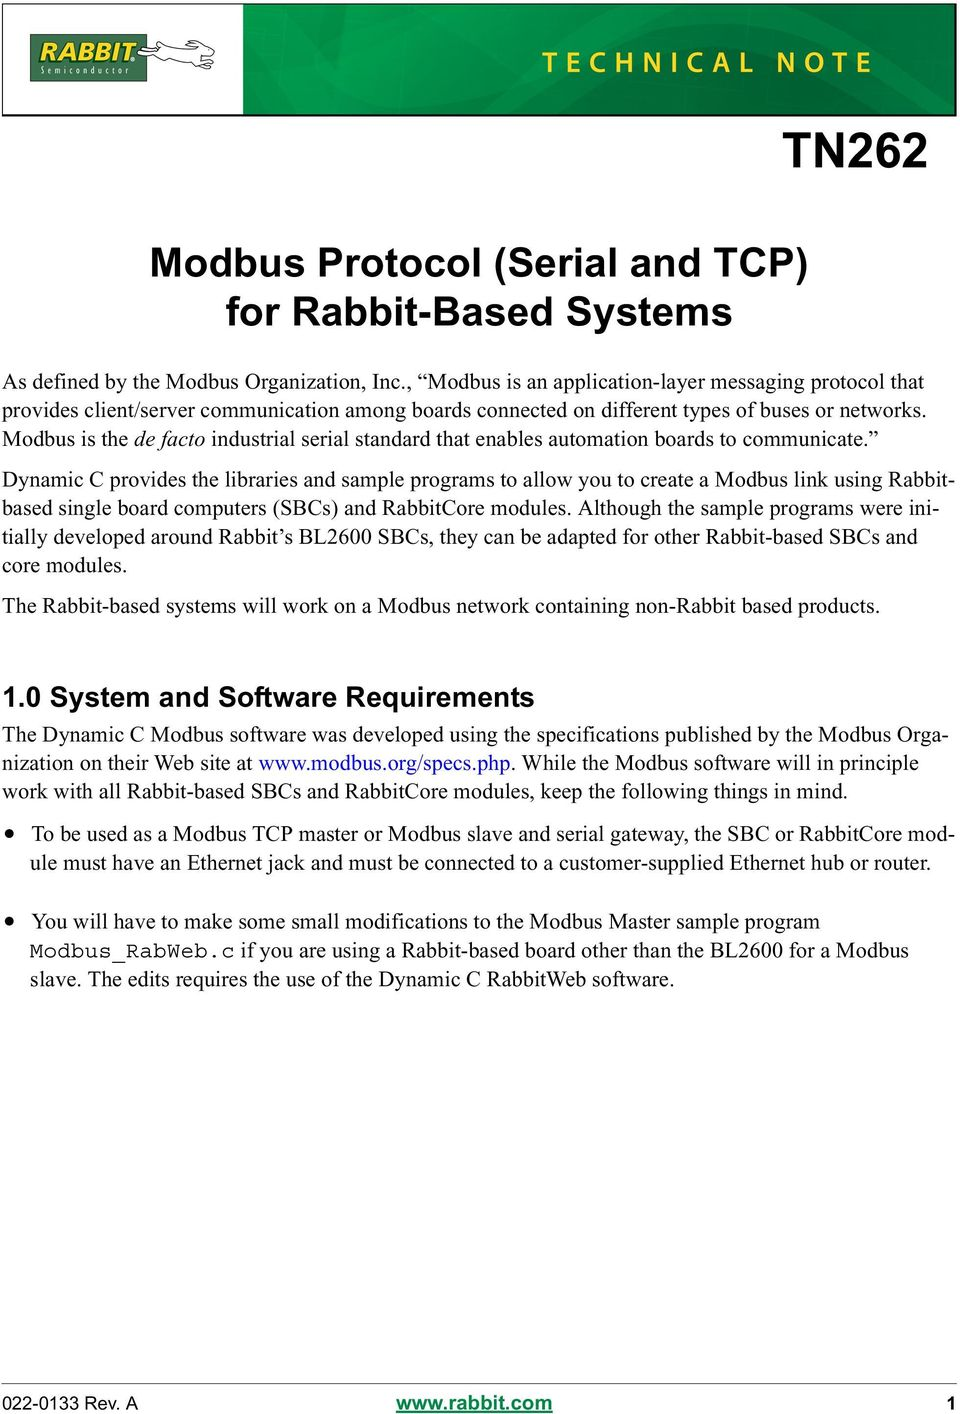 Modbus Protocol (Serial and TCP) for Rabbit-Based Systems - PDF